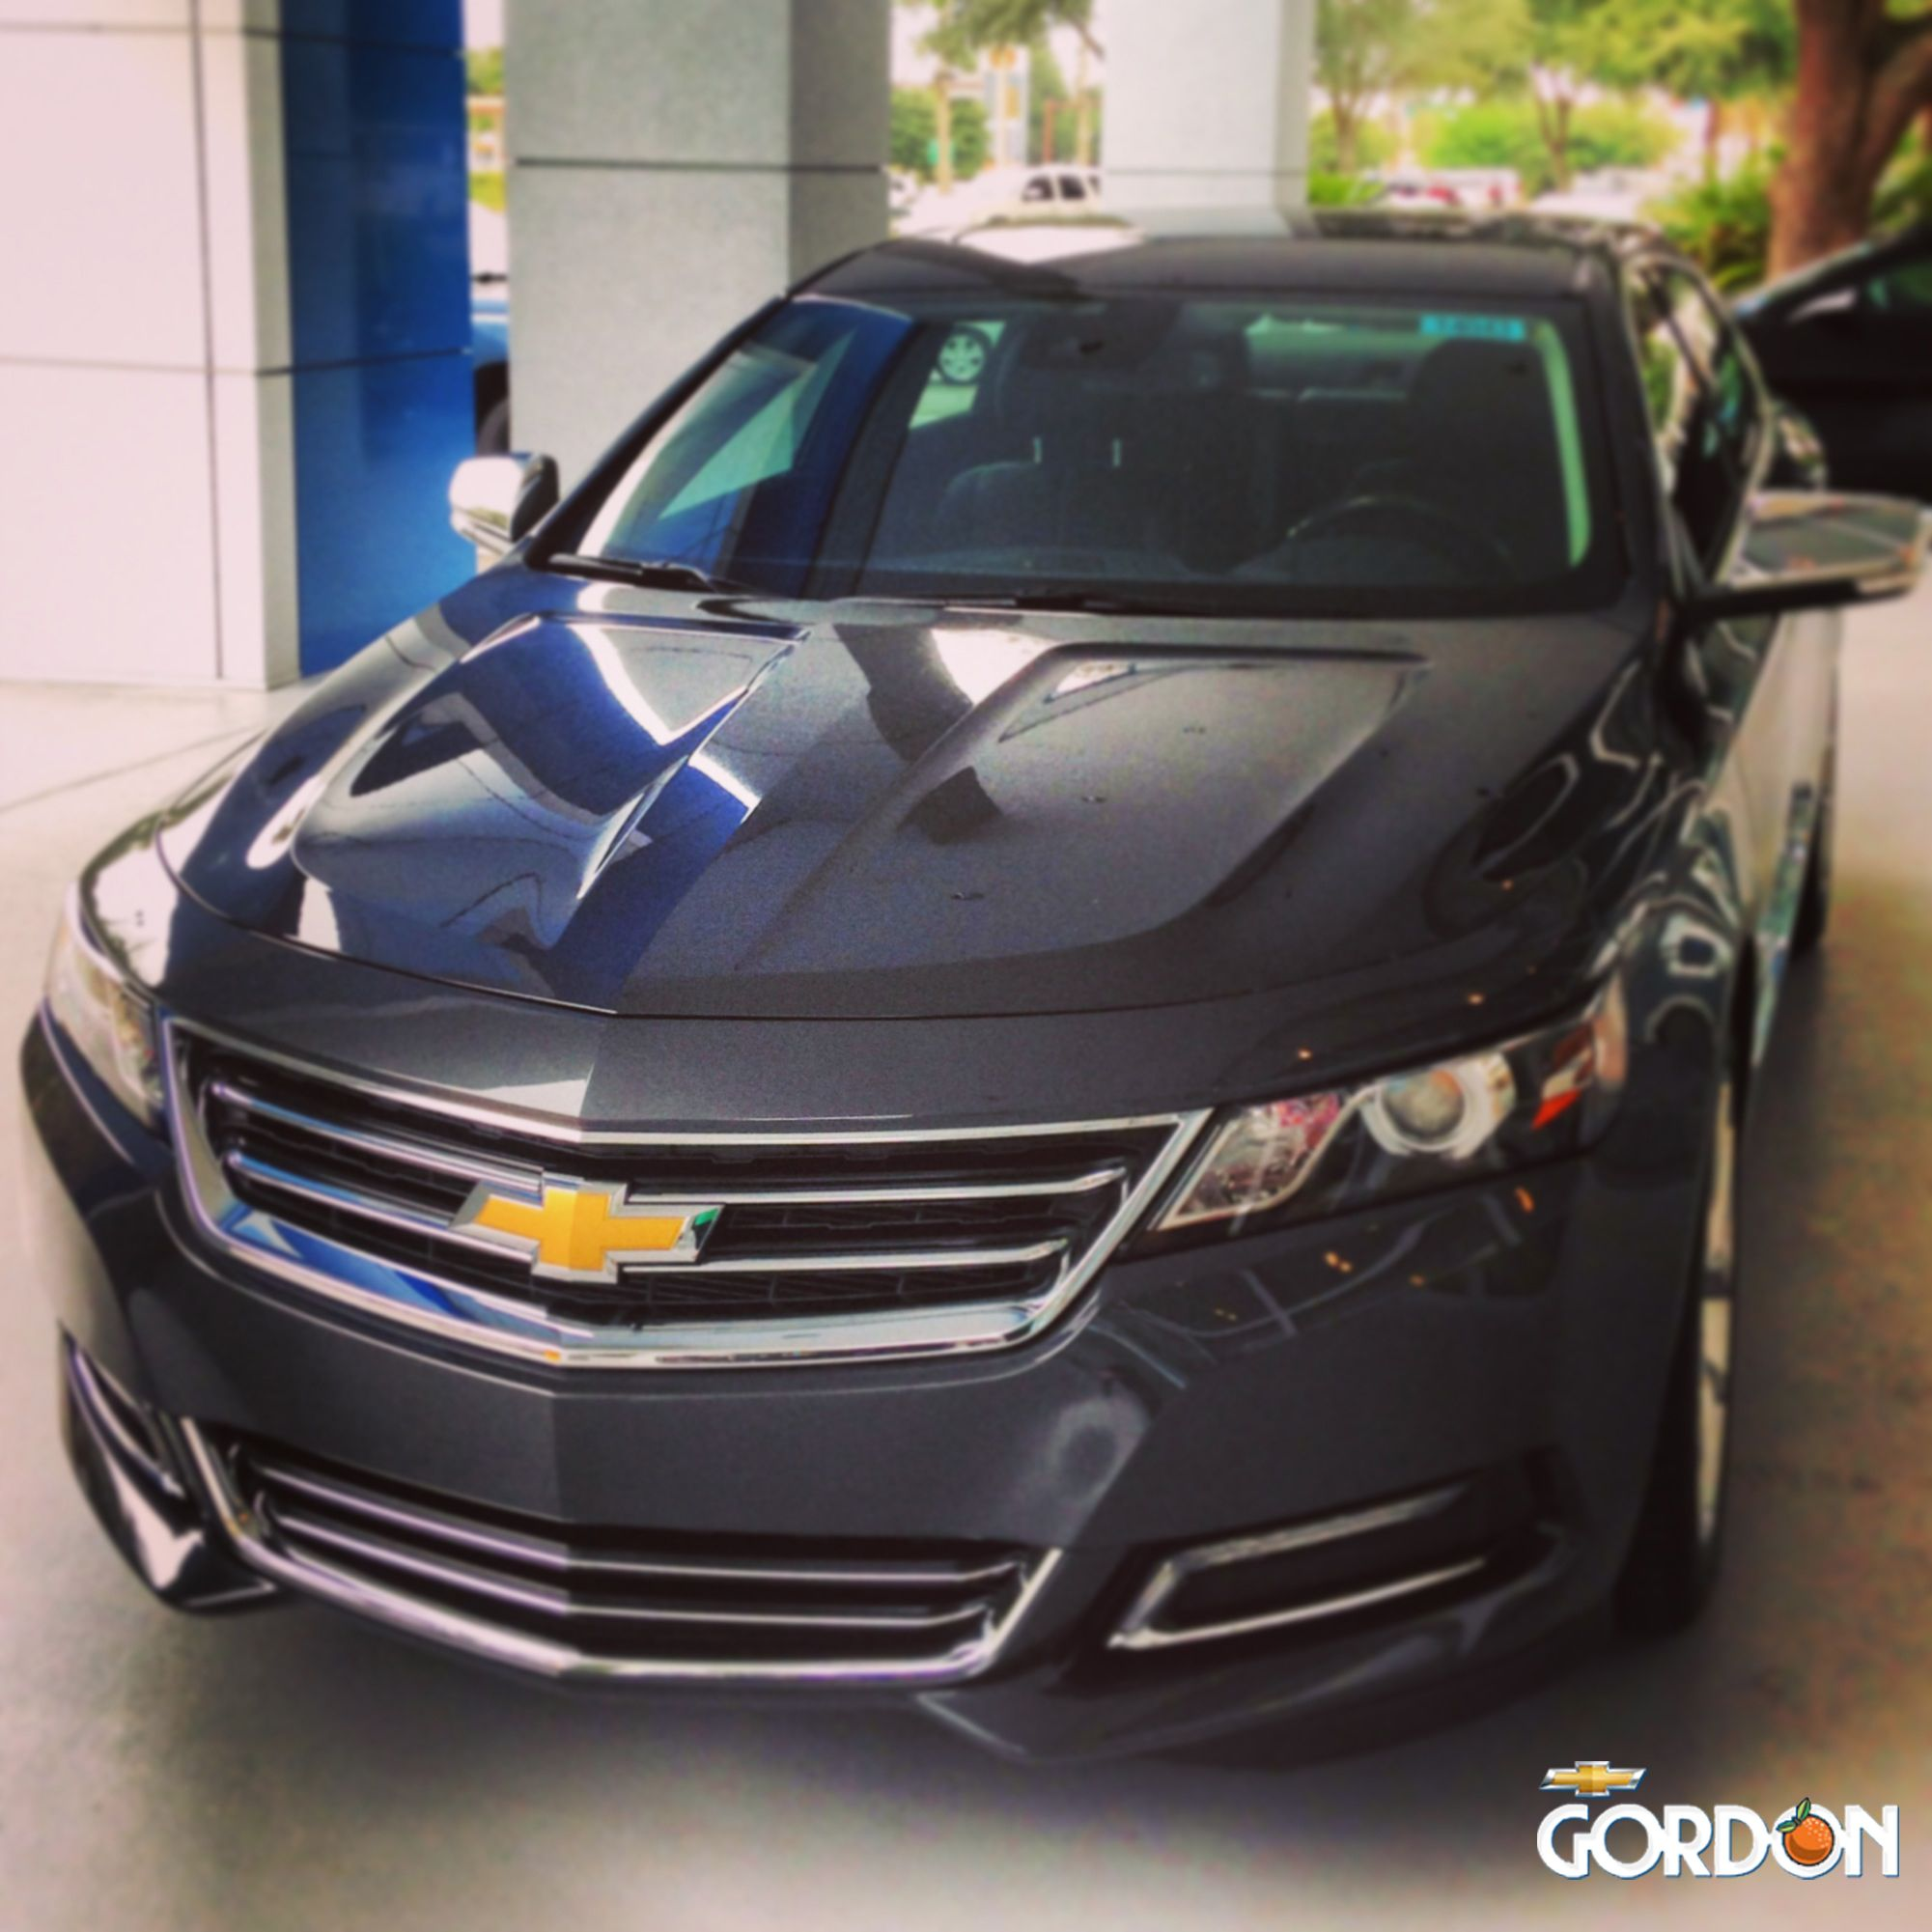 The Gorgeous 2014 Chevy Impala This Is At The Top Of My List With